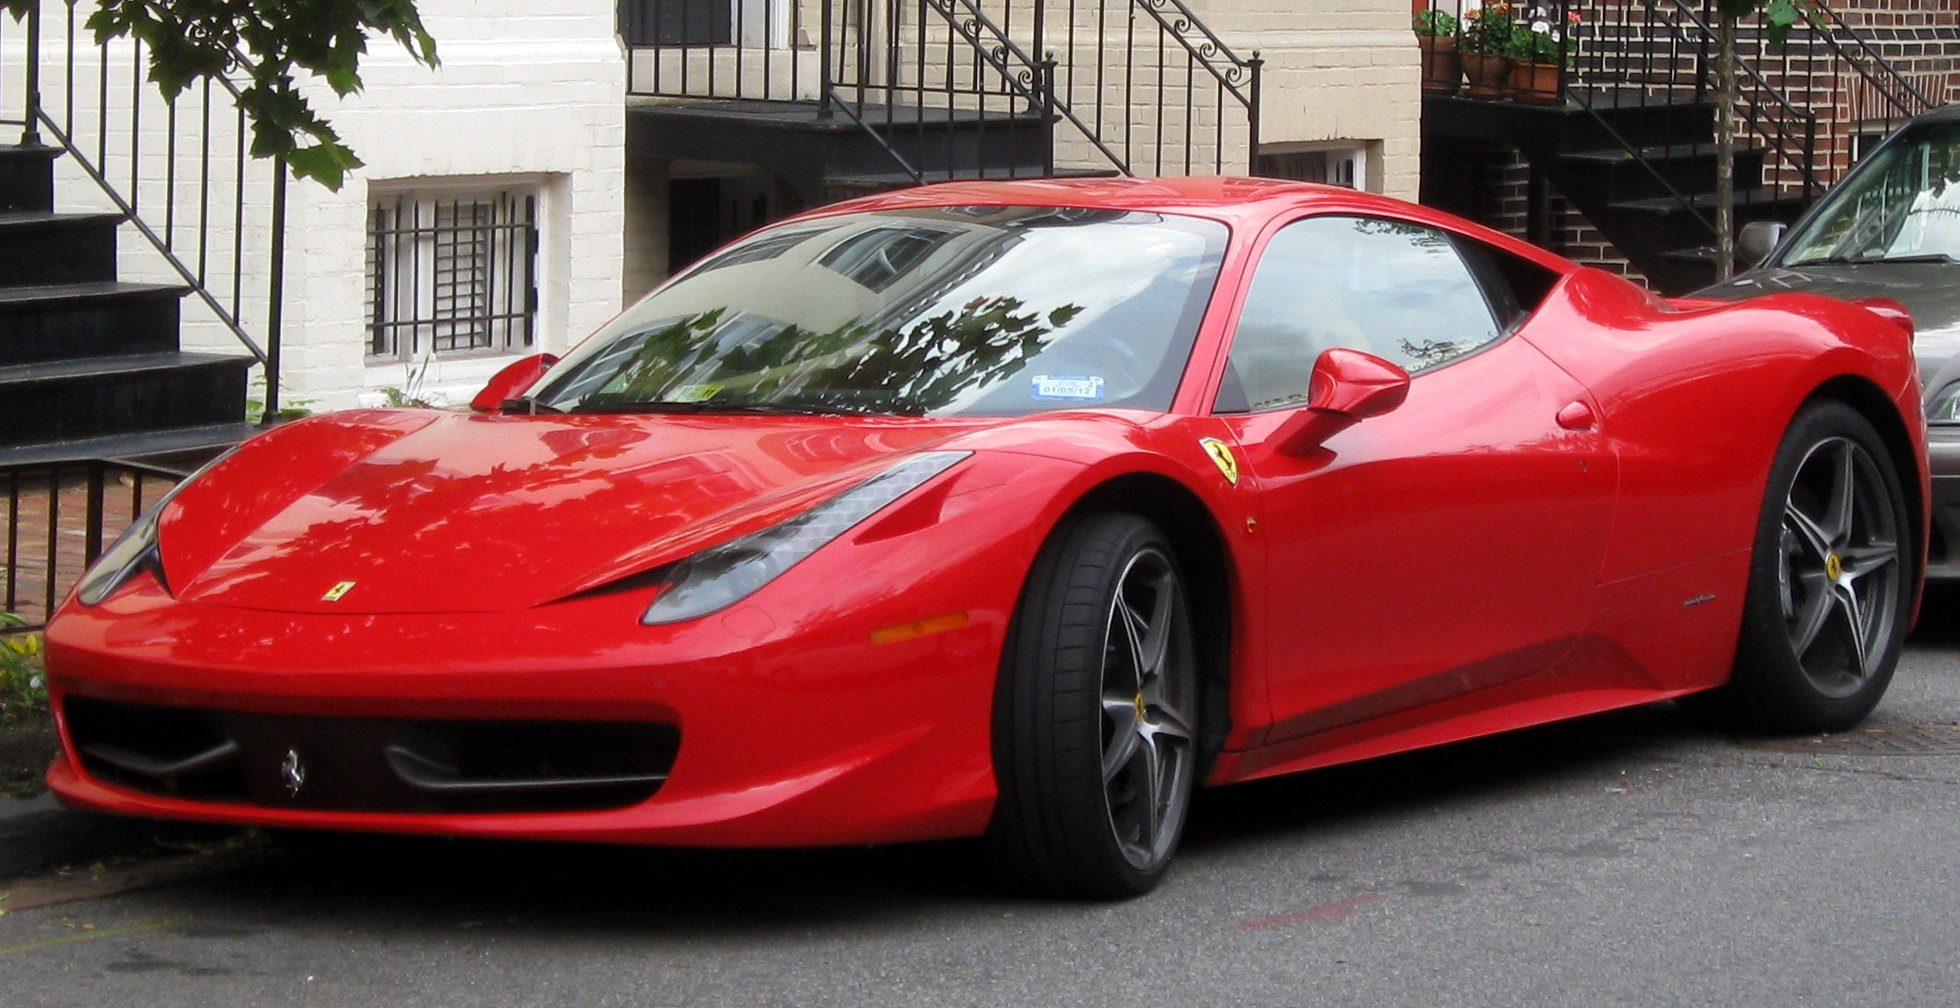 Ferrari 458 Italia Photos